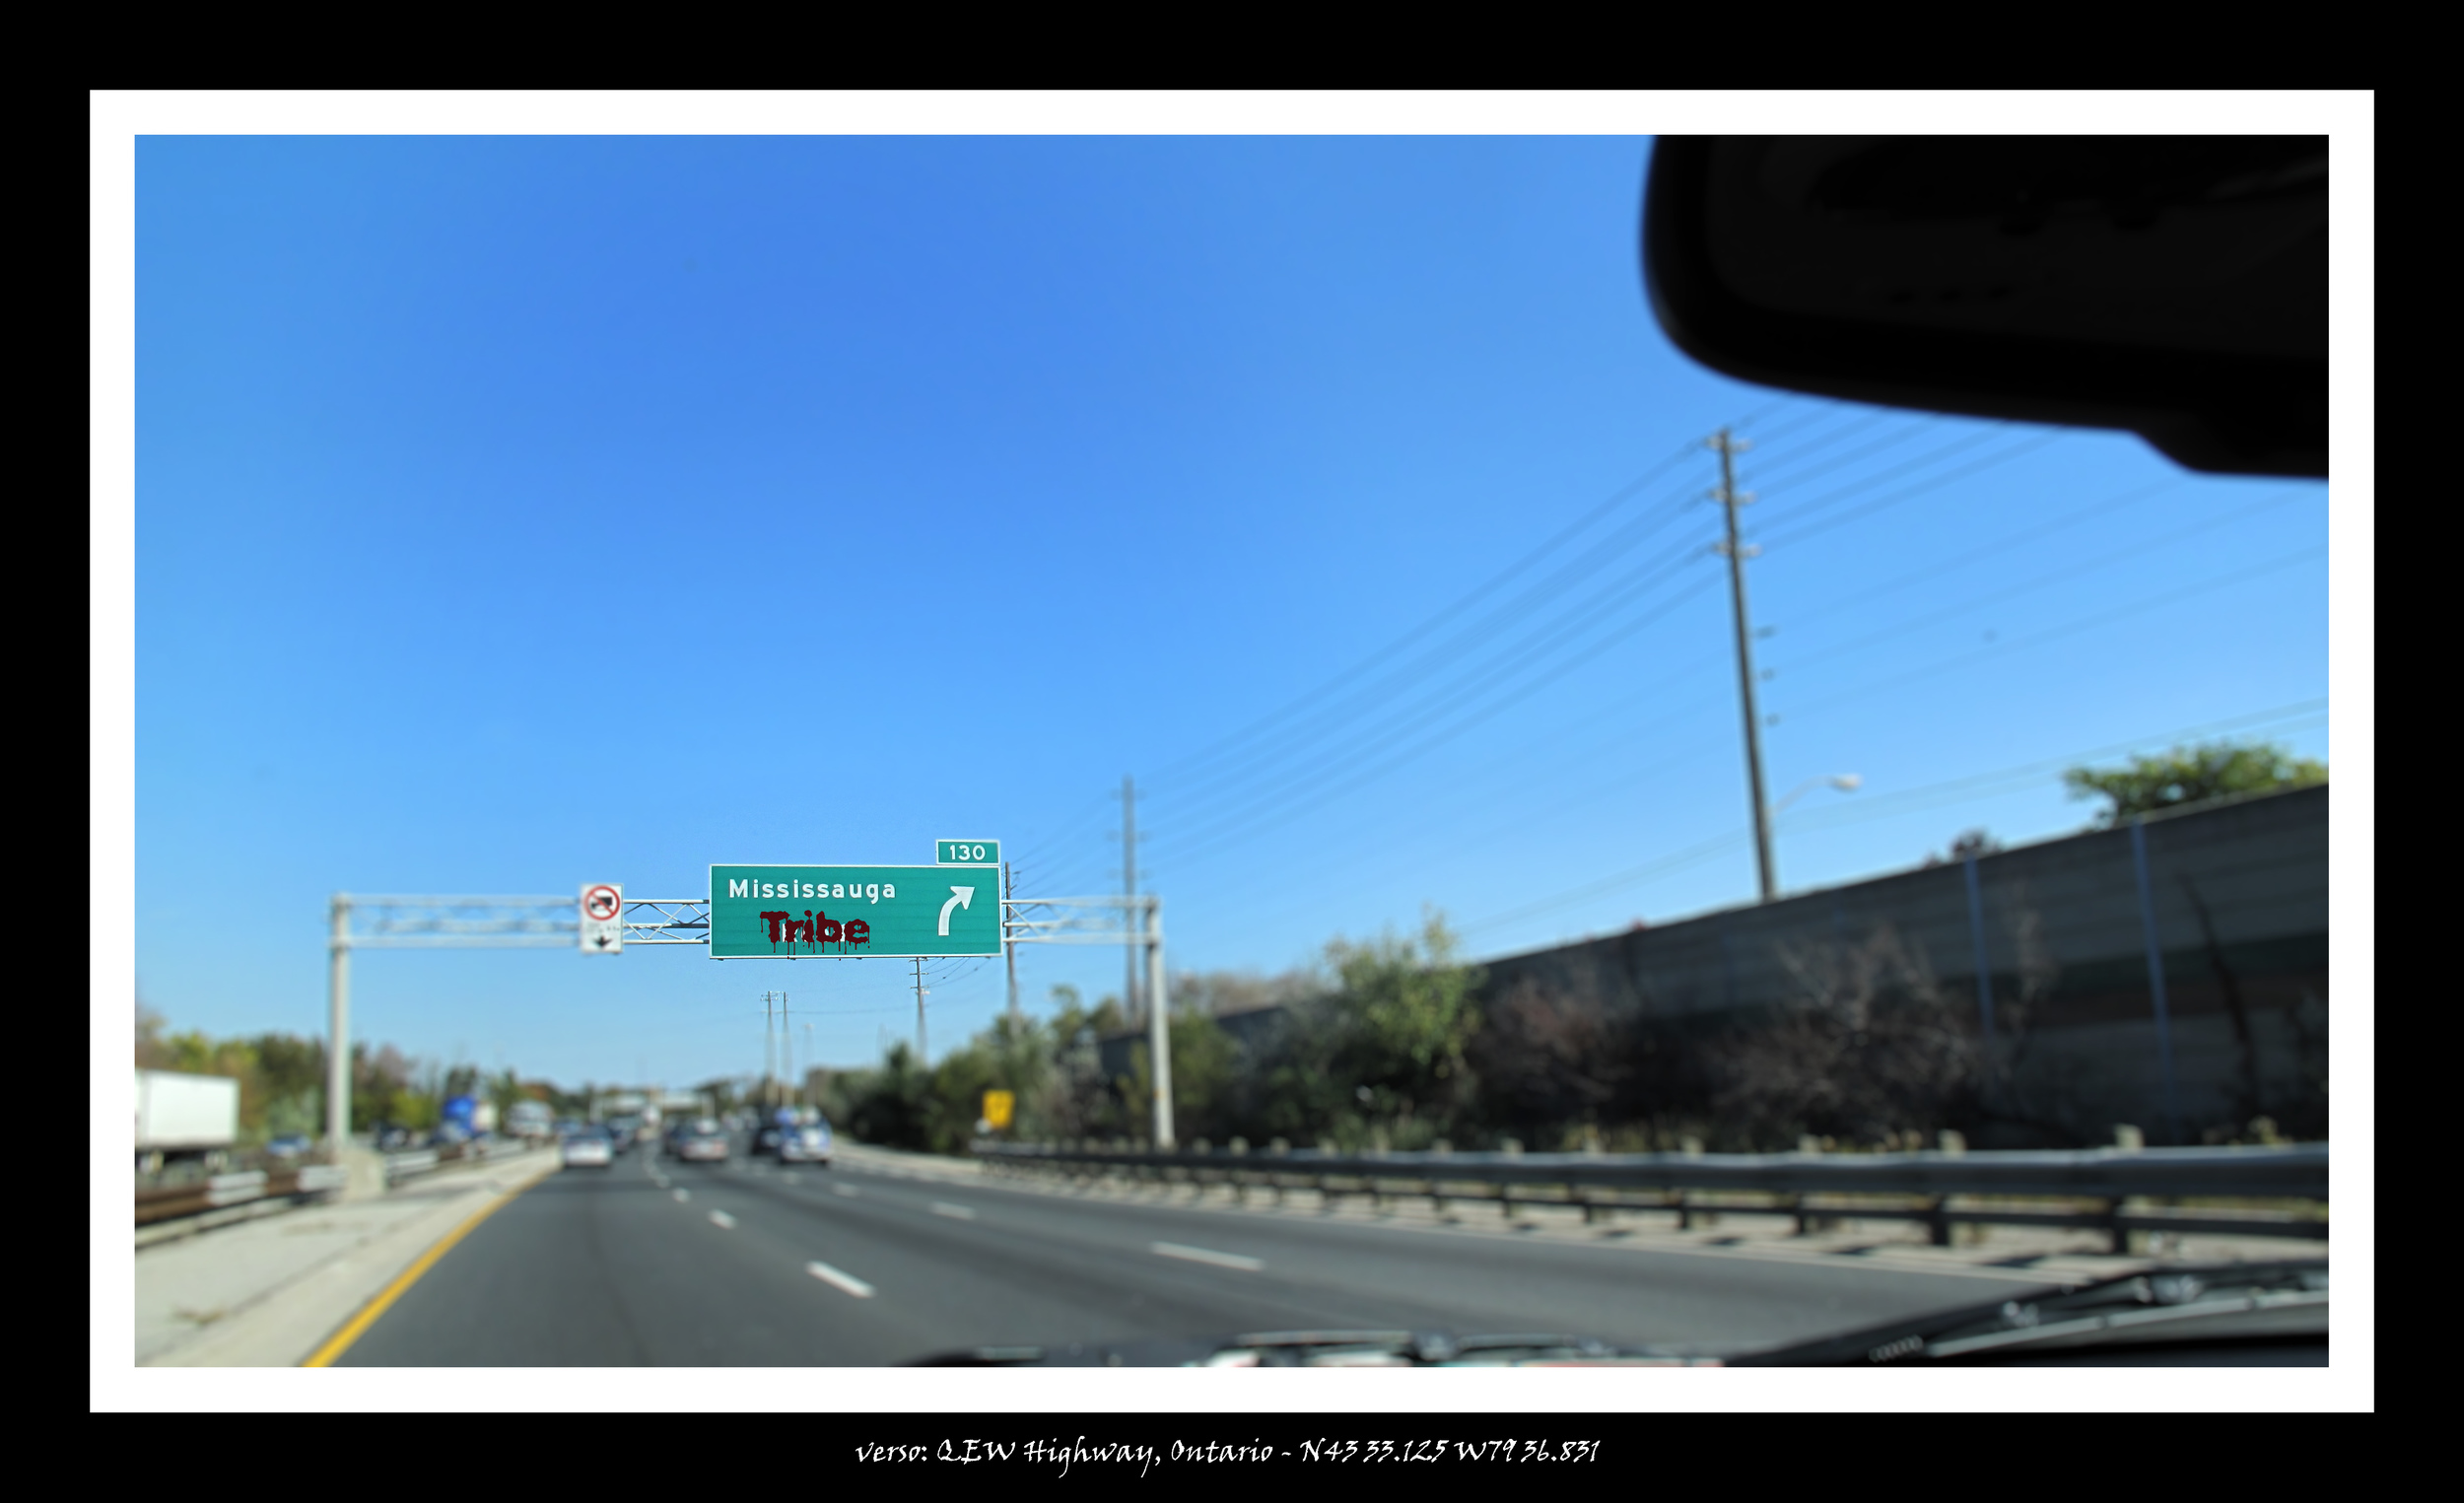 Graffito_Mississauga Exit sign from QEW.jpg